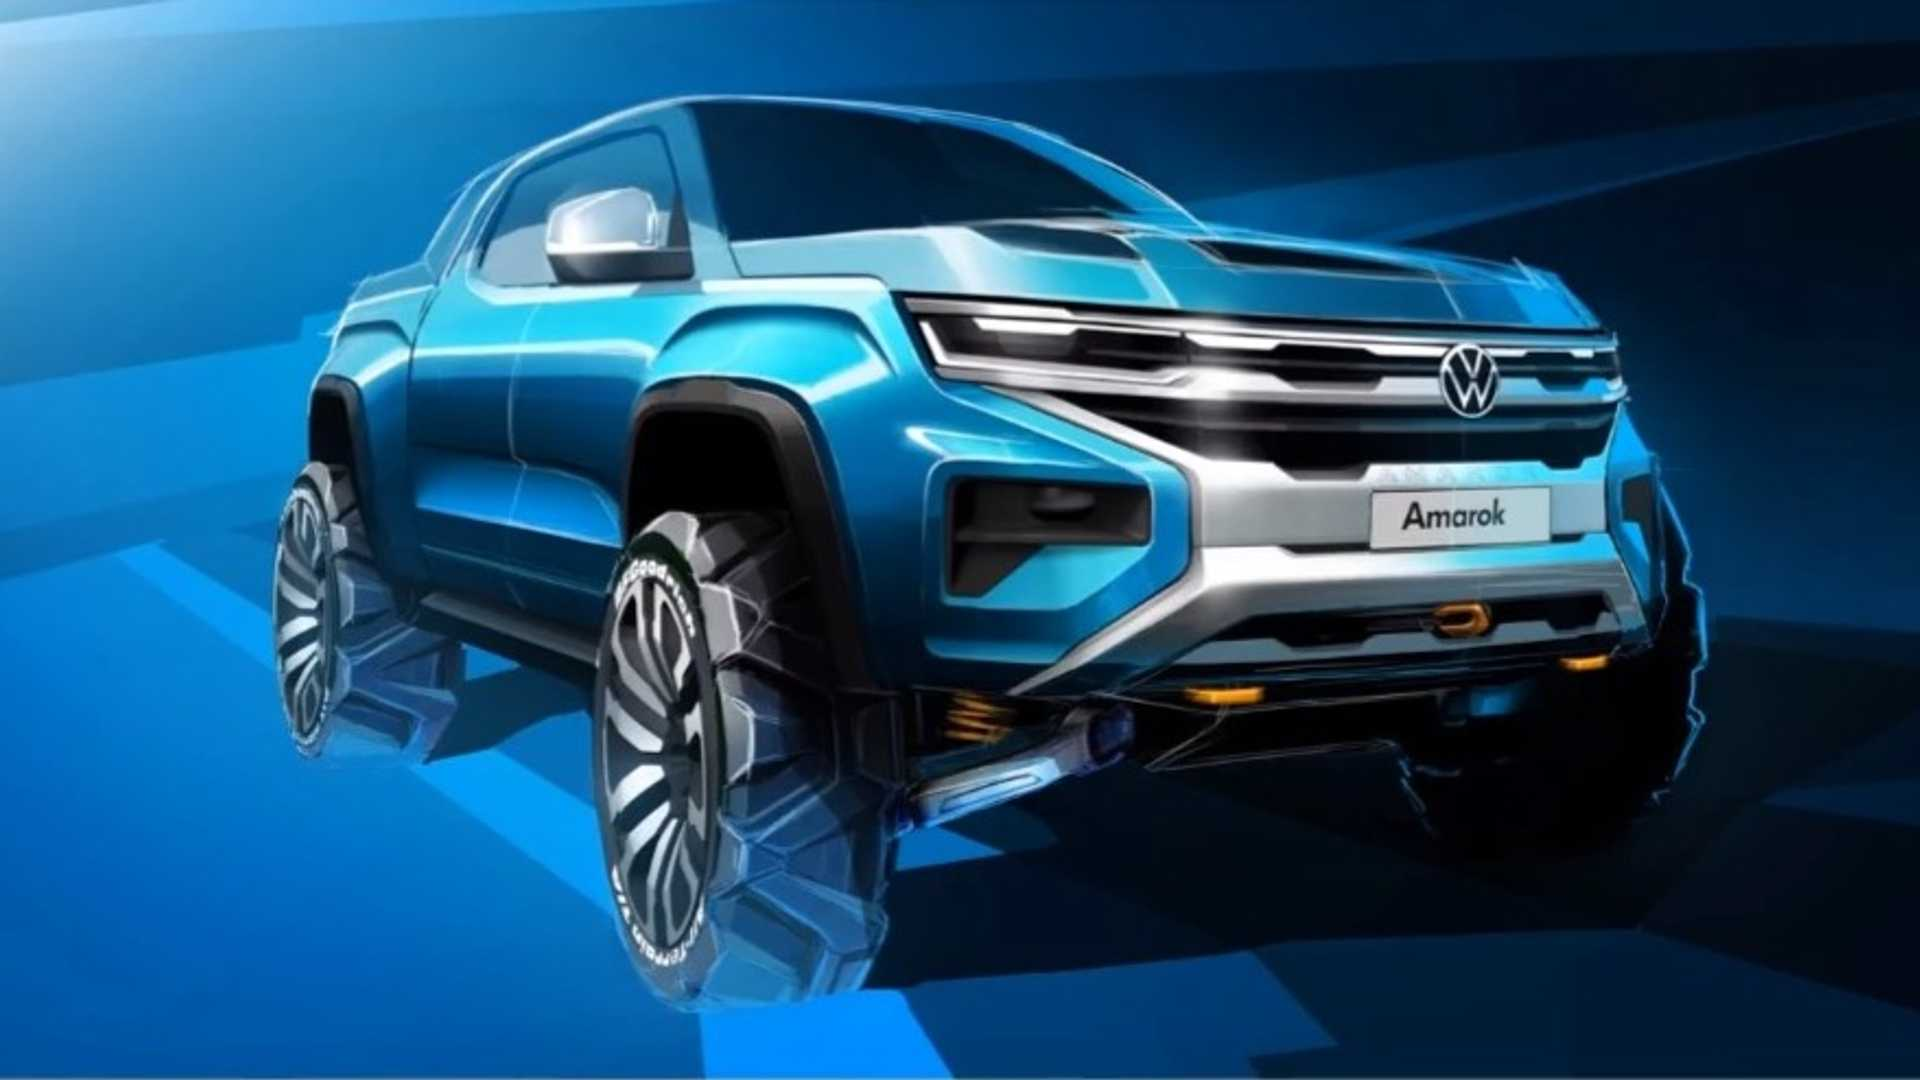 Ford Claims Next Ranger Already Has An 'Advantage' Over The VW Amarok - Motor1